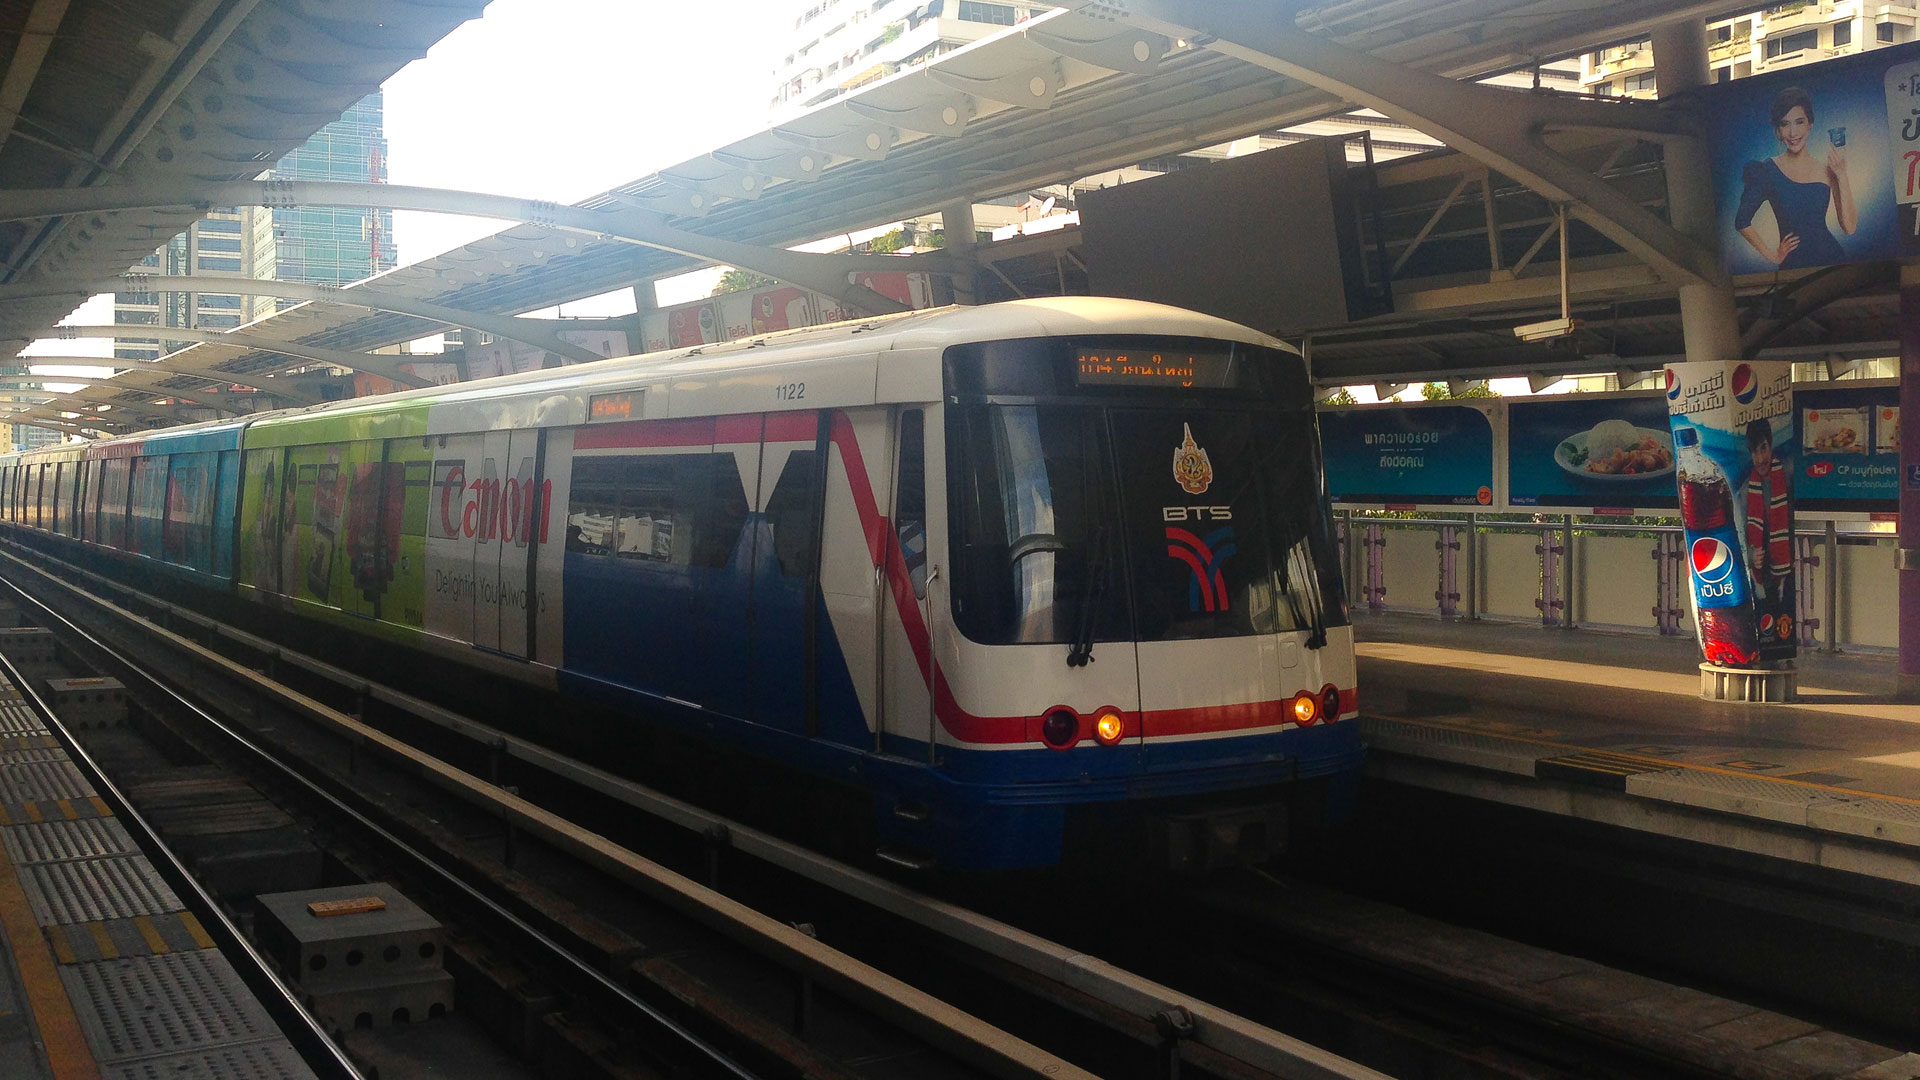 BTS Sky Train at Chong Nonsi station in Bangkok